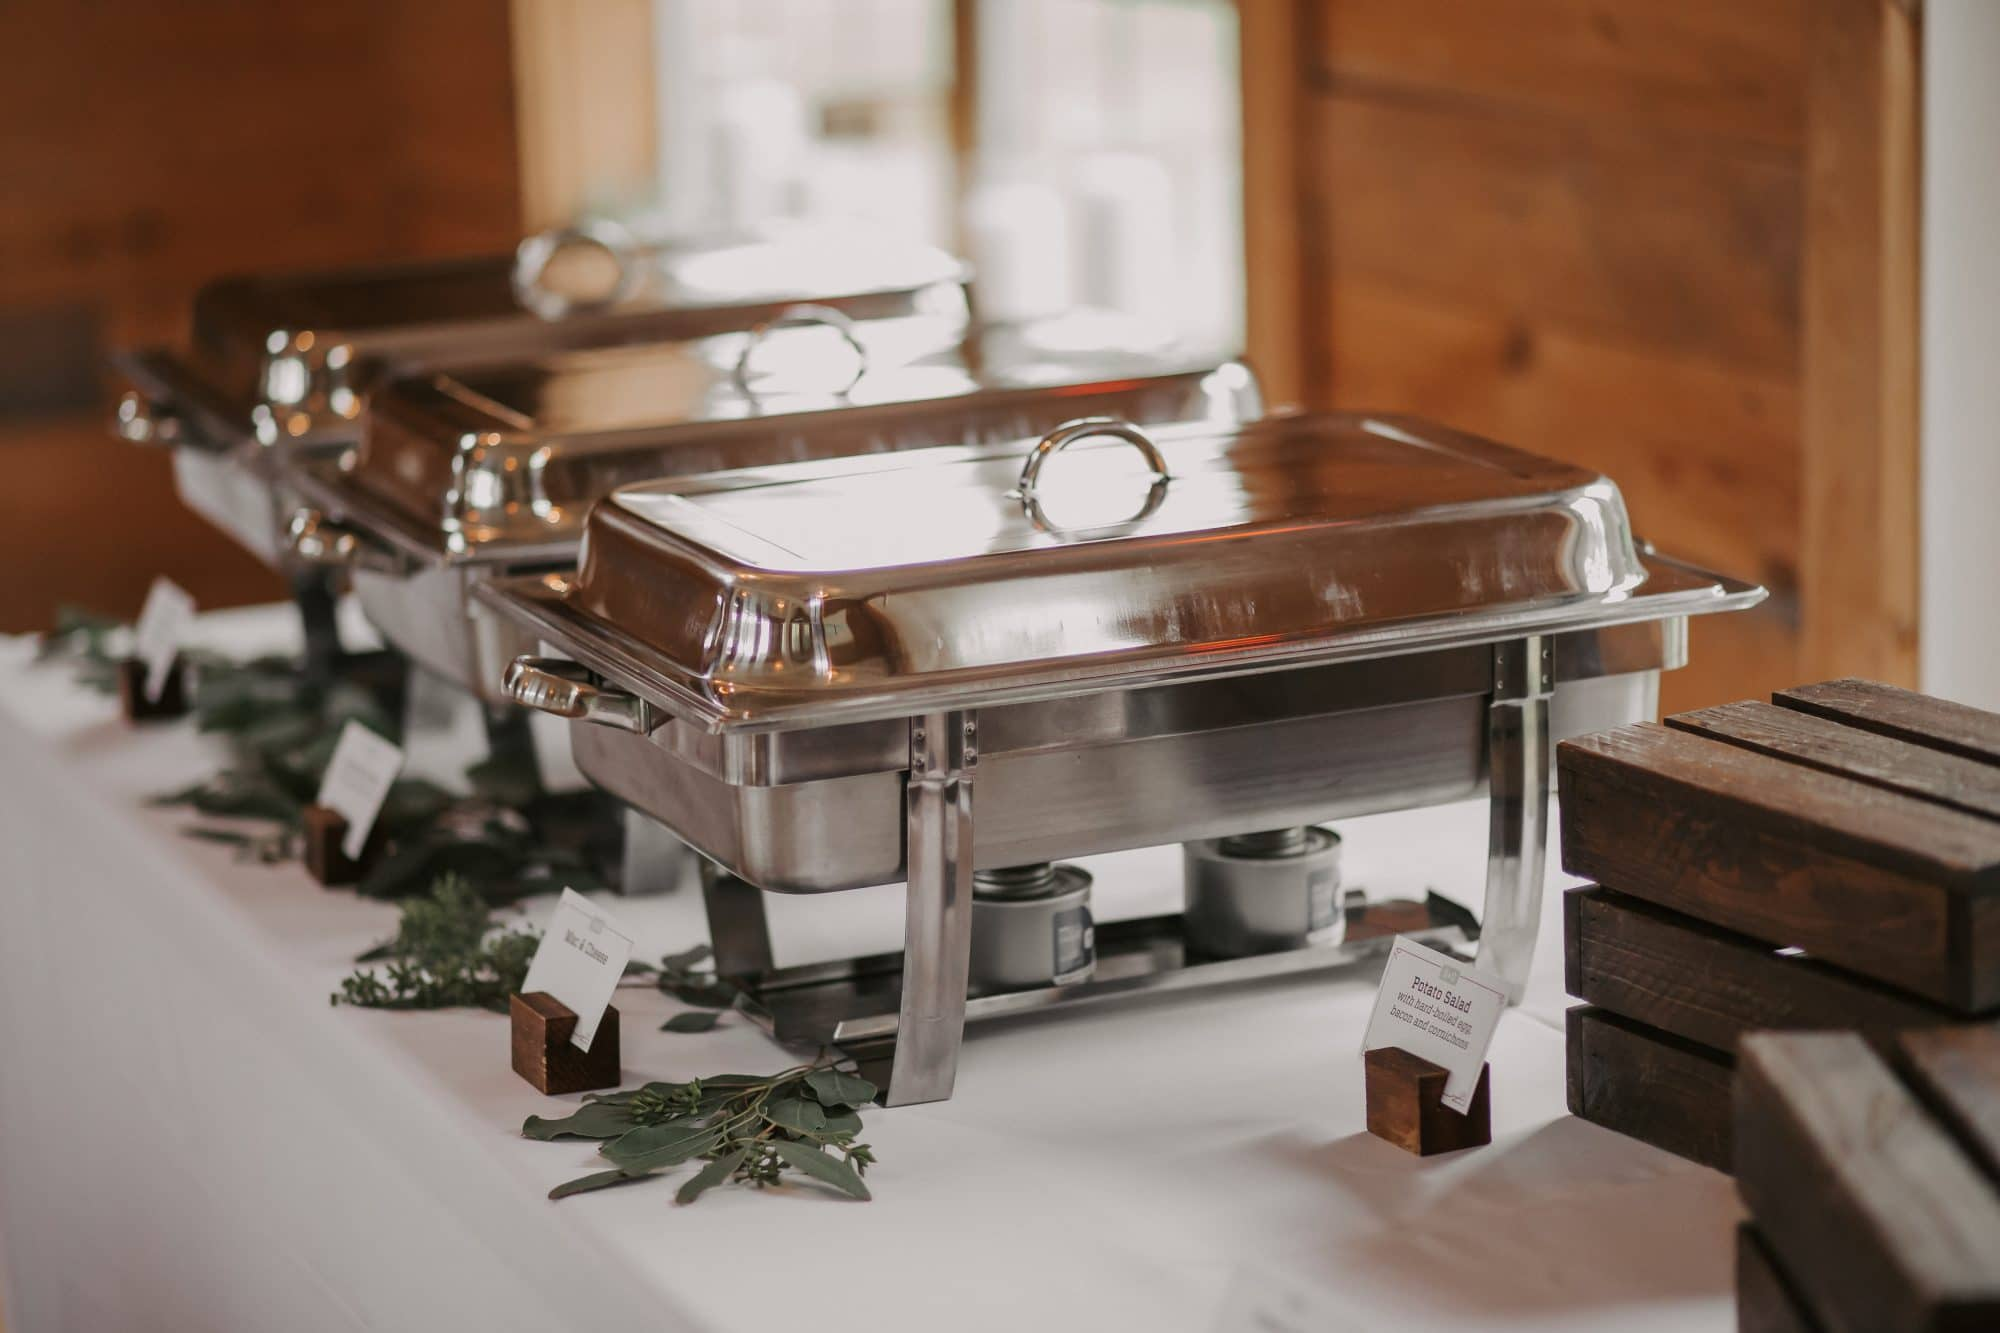 Swine & Sons - chafing dishes set out for wedding reception buffet